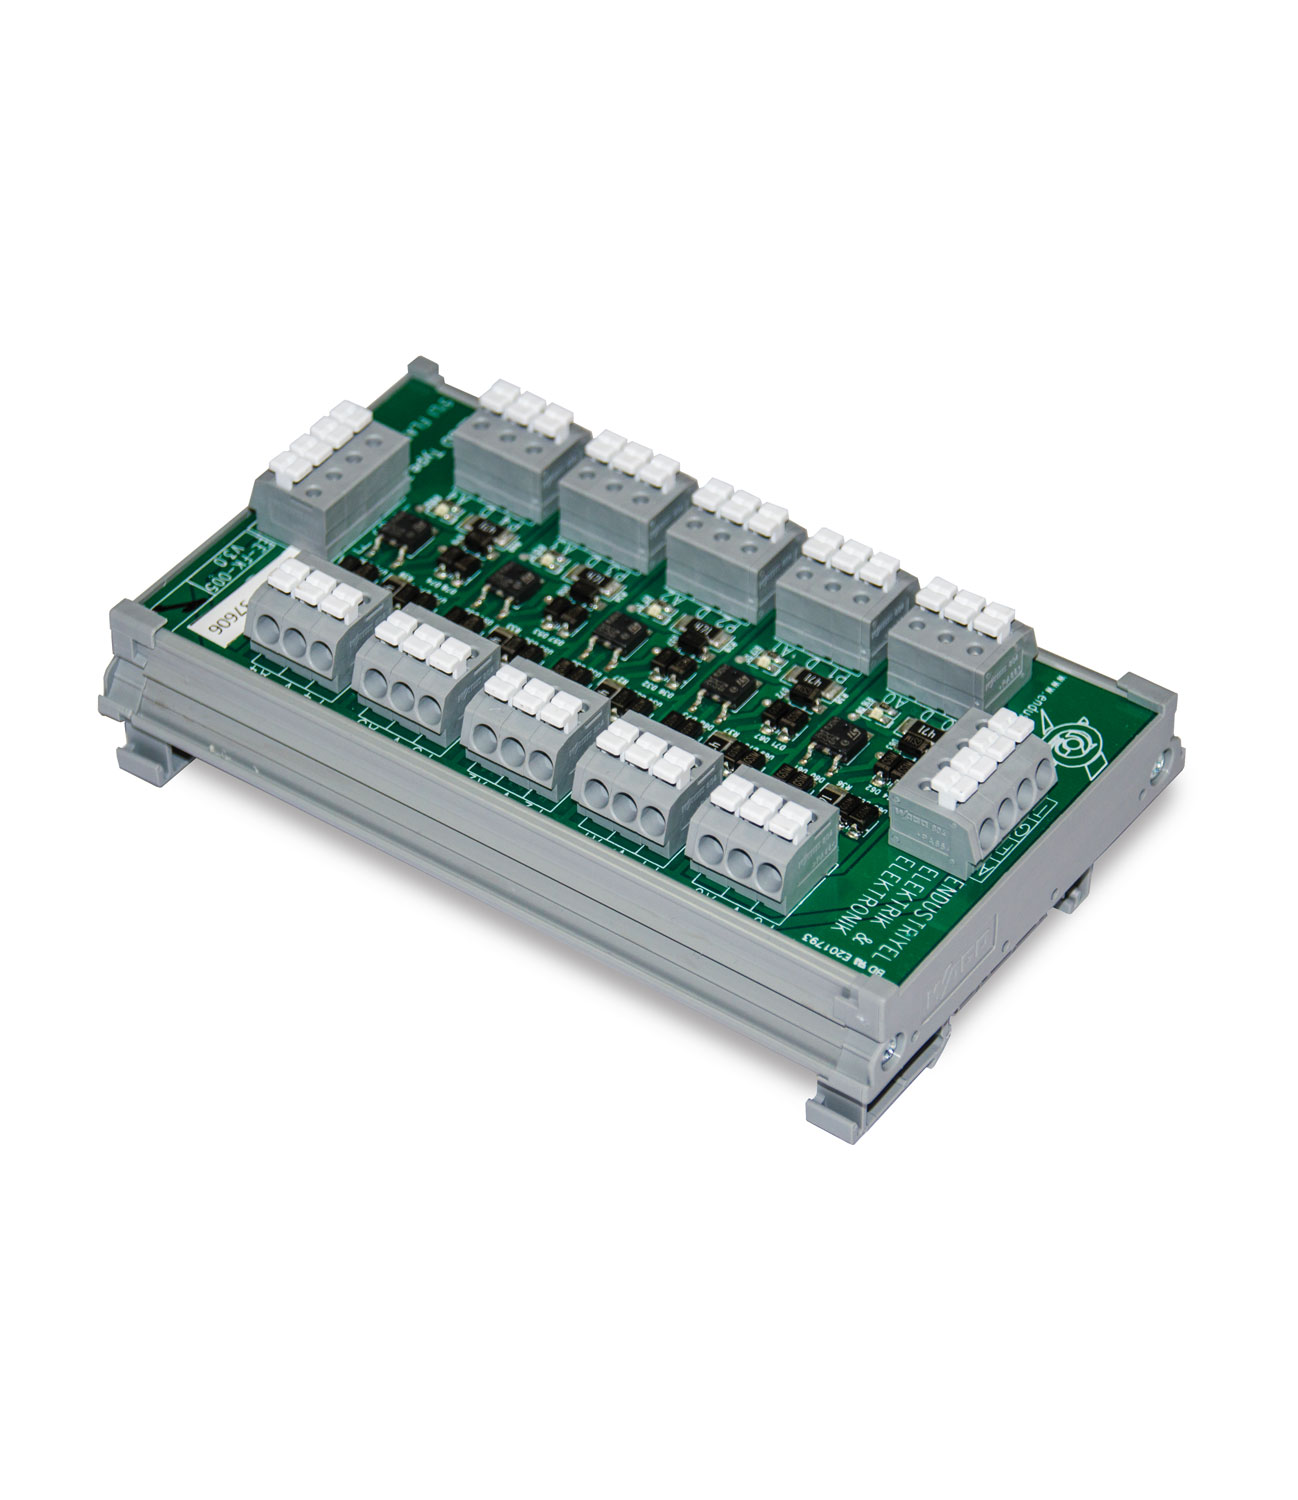 Filter Control Unit with Pulse Valve16